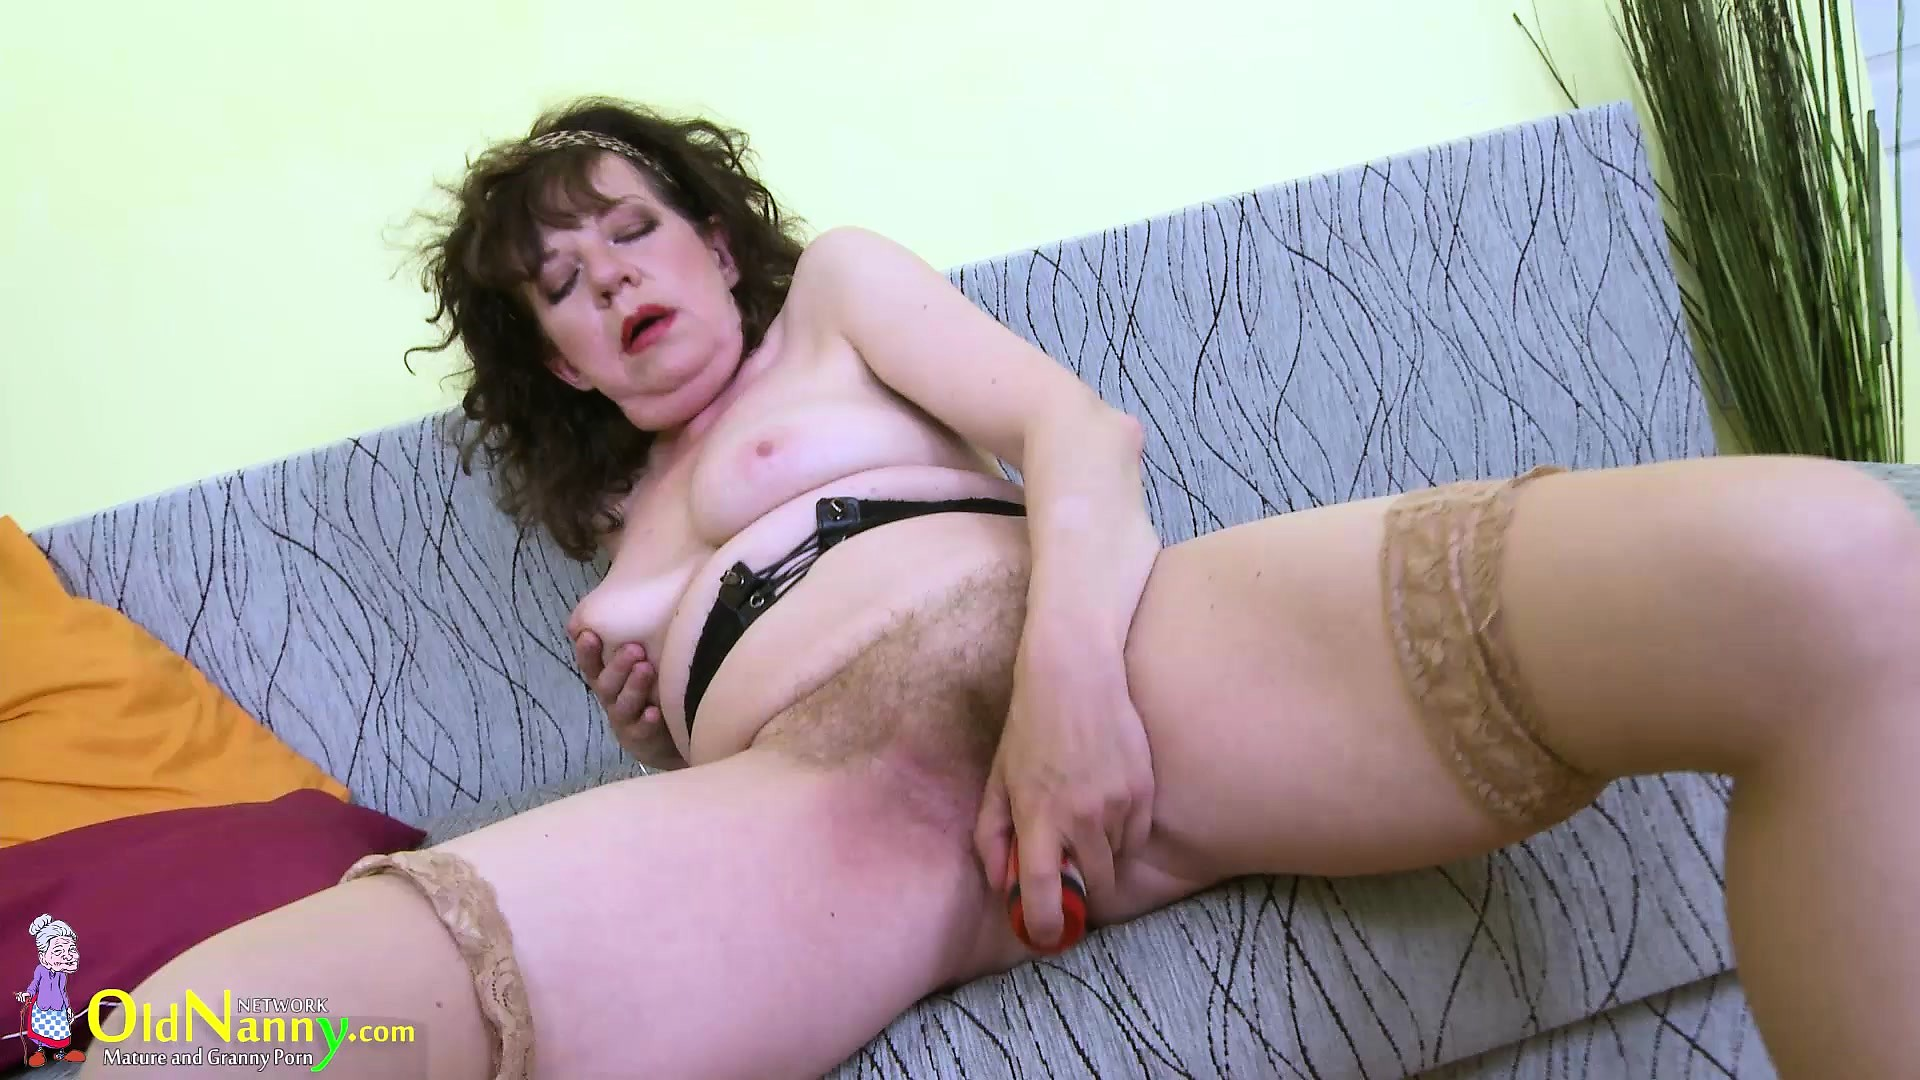 Hairy Teen Masturbation Pov